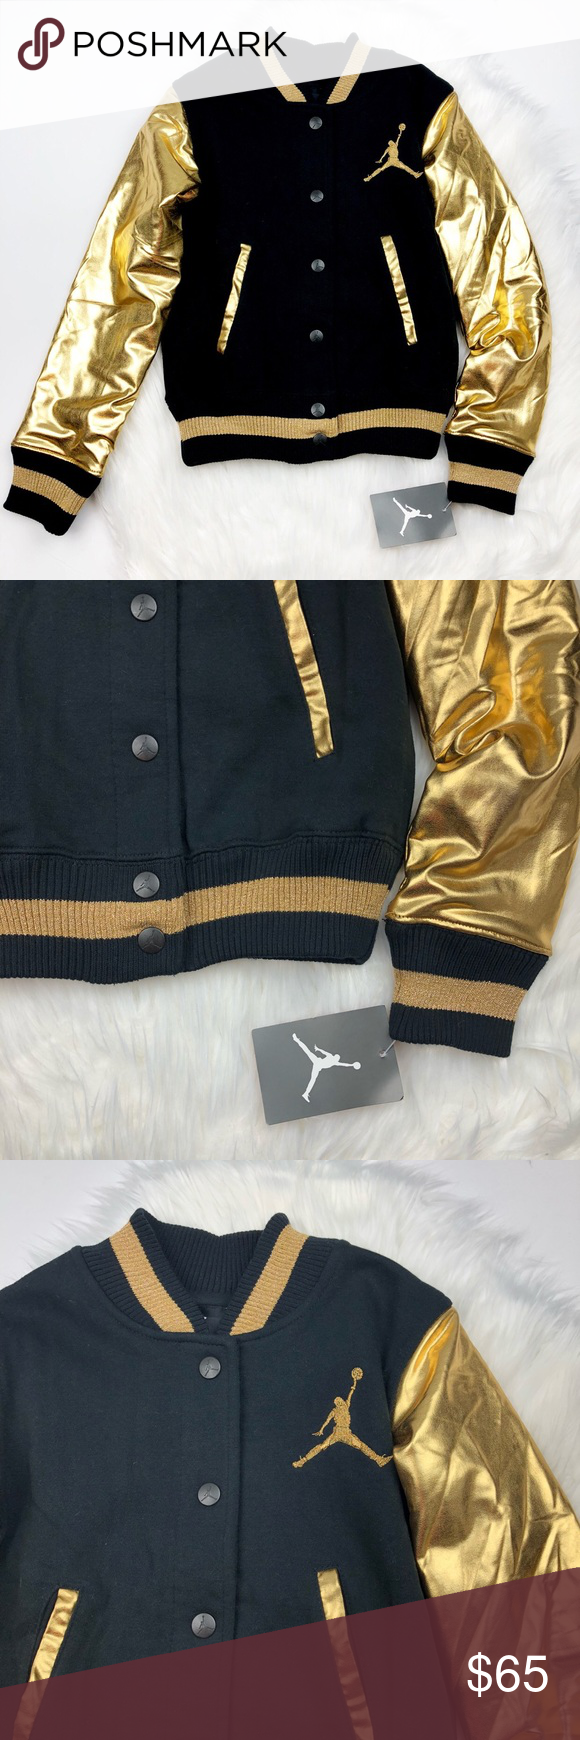 7da0fca9e72907 NWT Girls Jordan Metallic Gold Varsity Jacket So cute and brand new with  tags! Rare and sold out. Metallic gold sleeves with brocade print 23 on the  back.